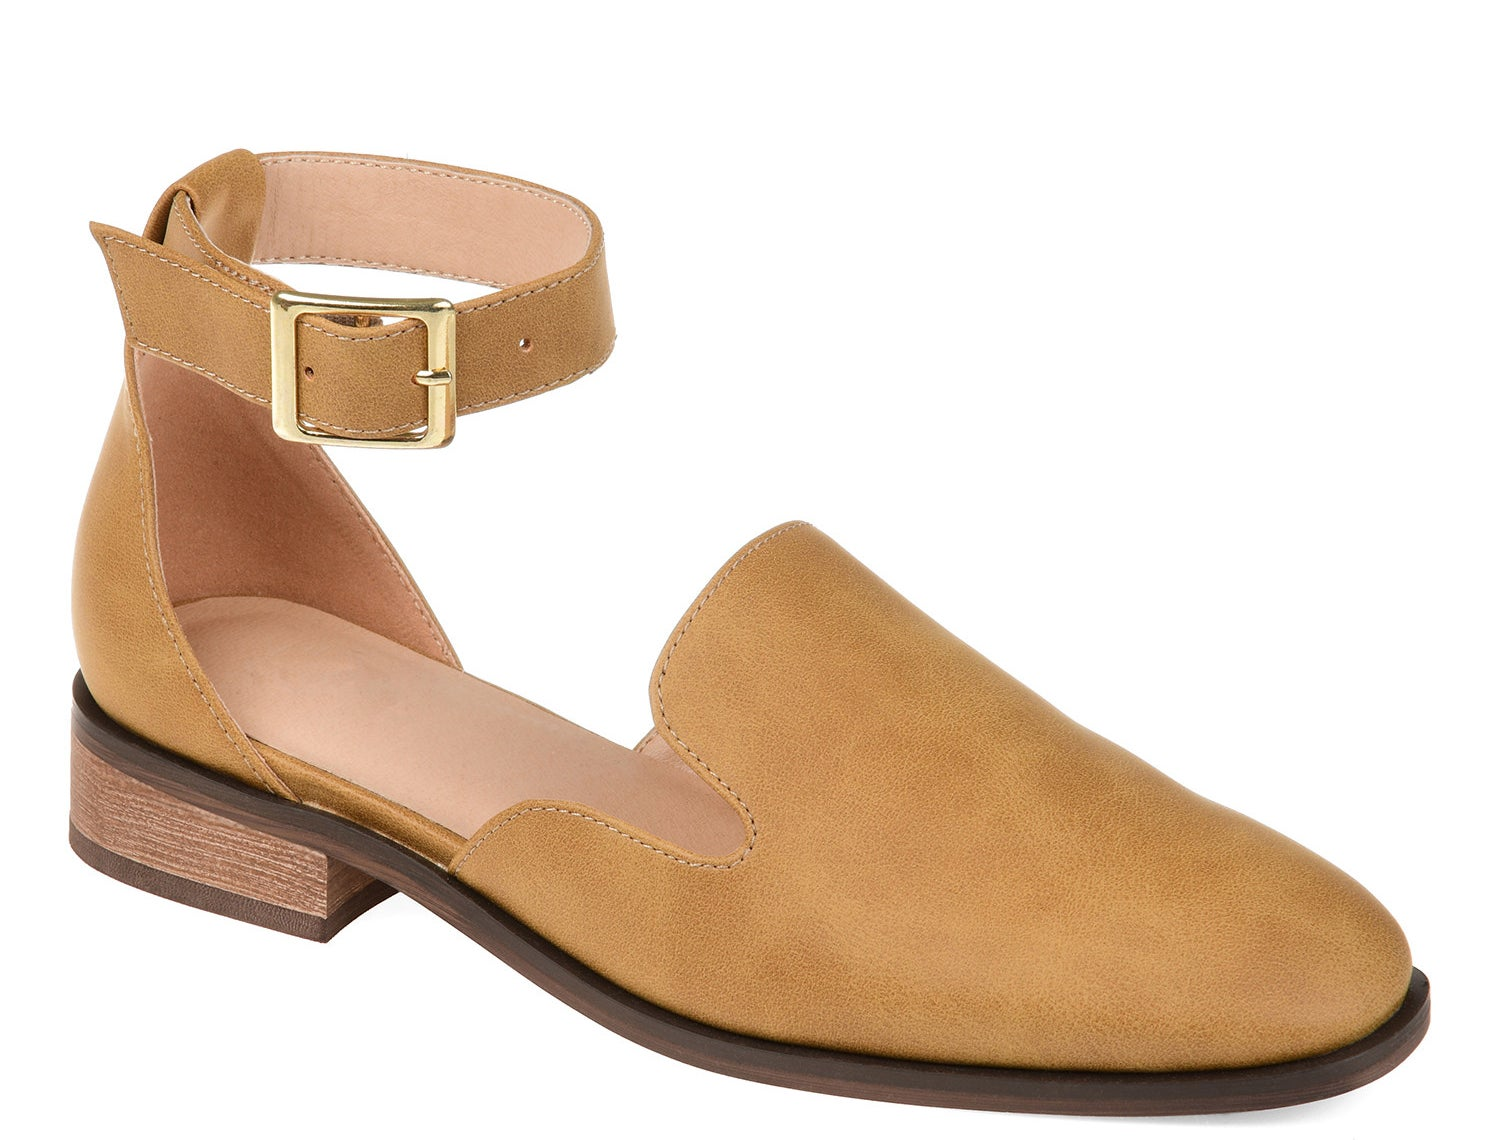 Square toe mustard flats with ankle strap